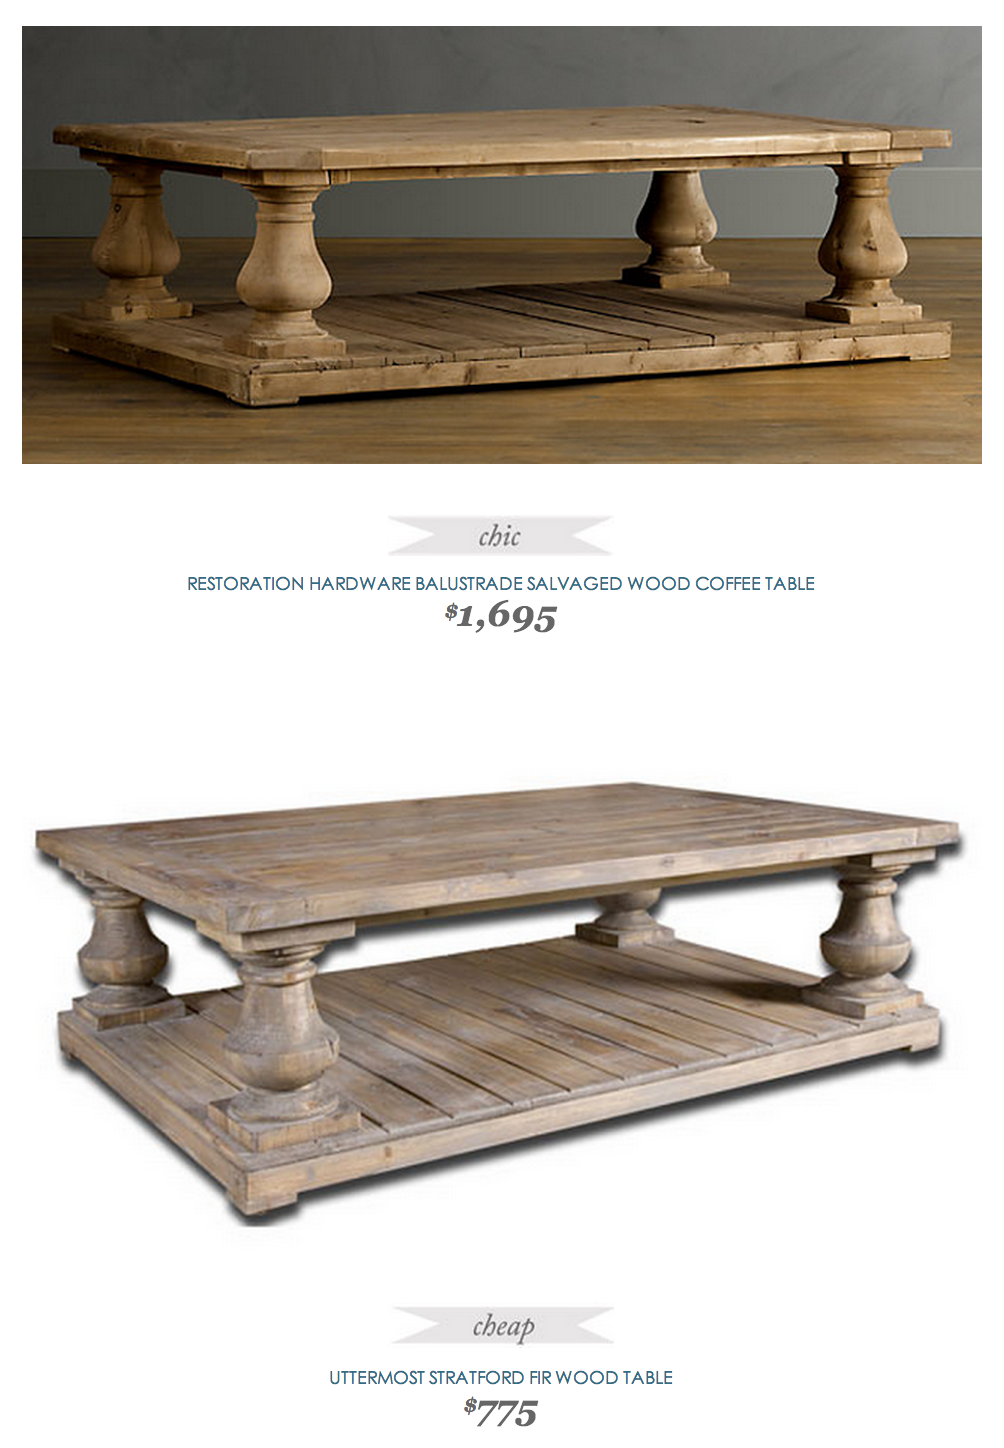 #CopyCatChicFind #RestorationHardware Balustrade Salvaged Wood Coffee Table  $1695   Vs   #Uttermost Stratford